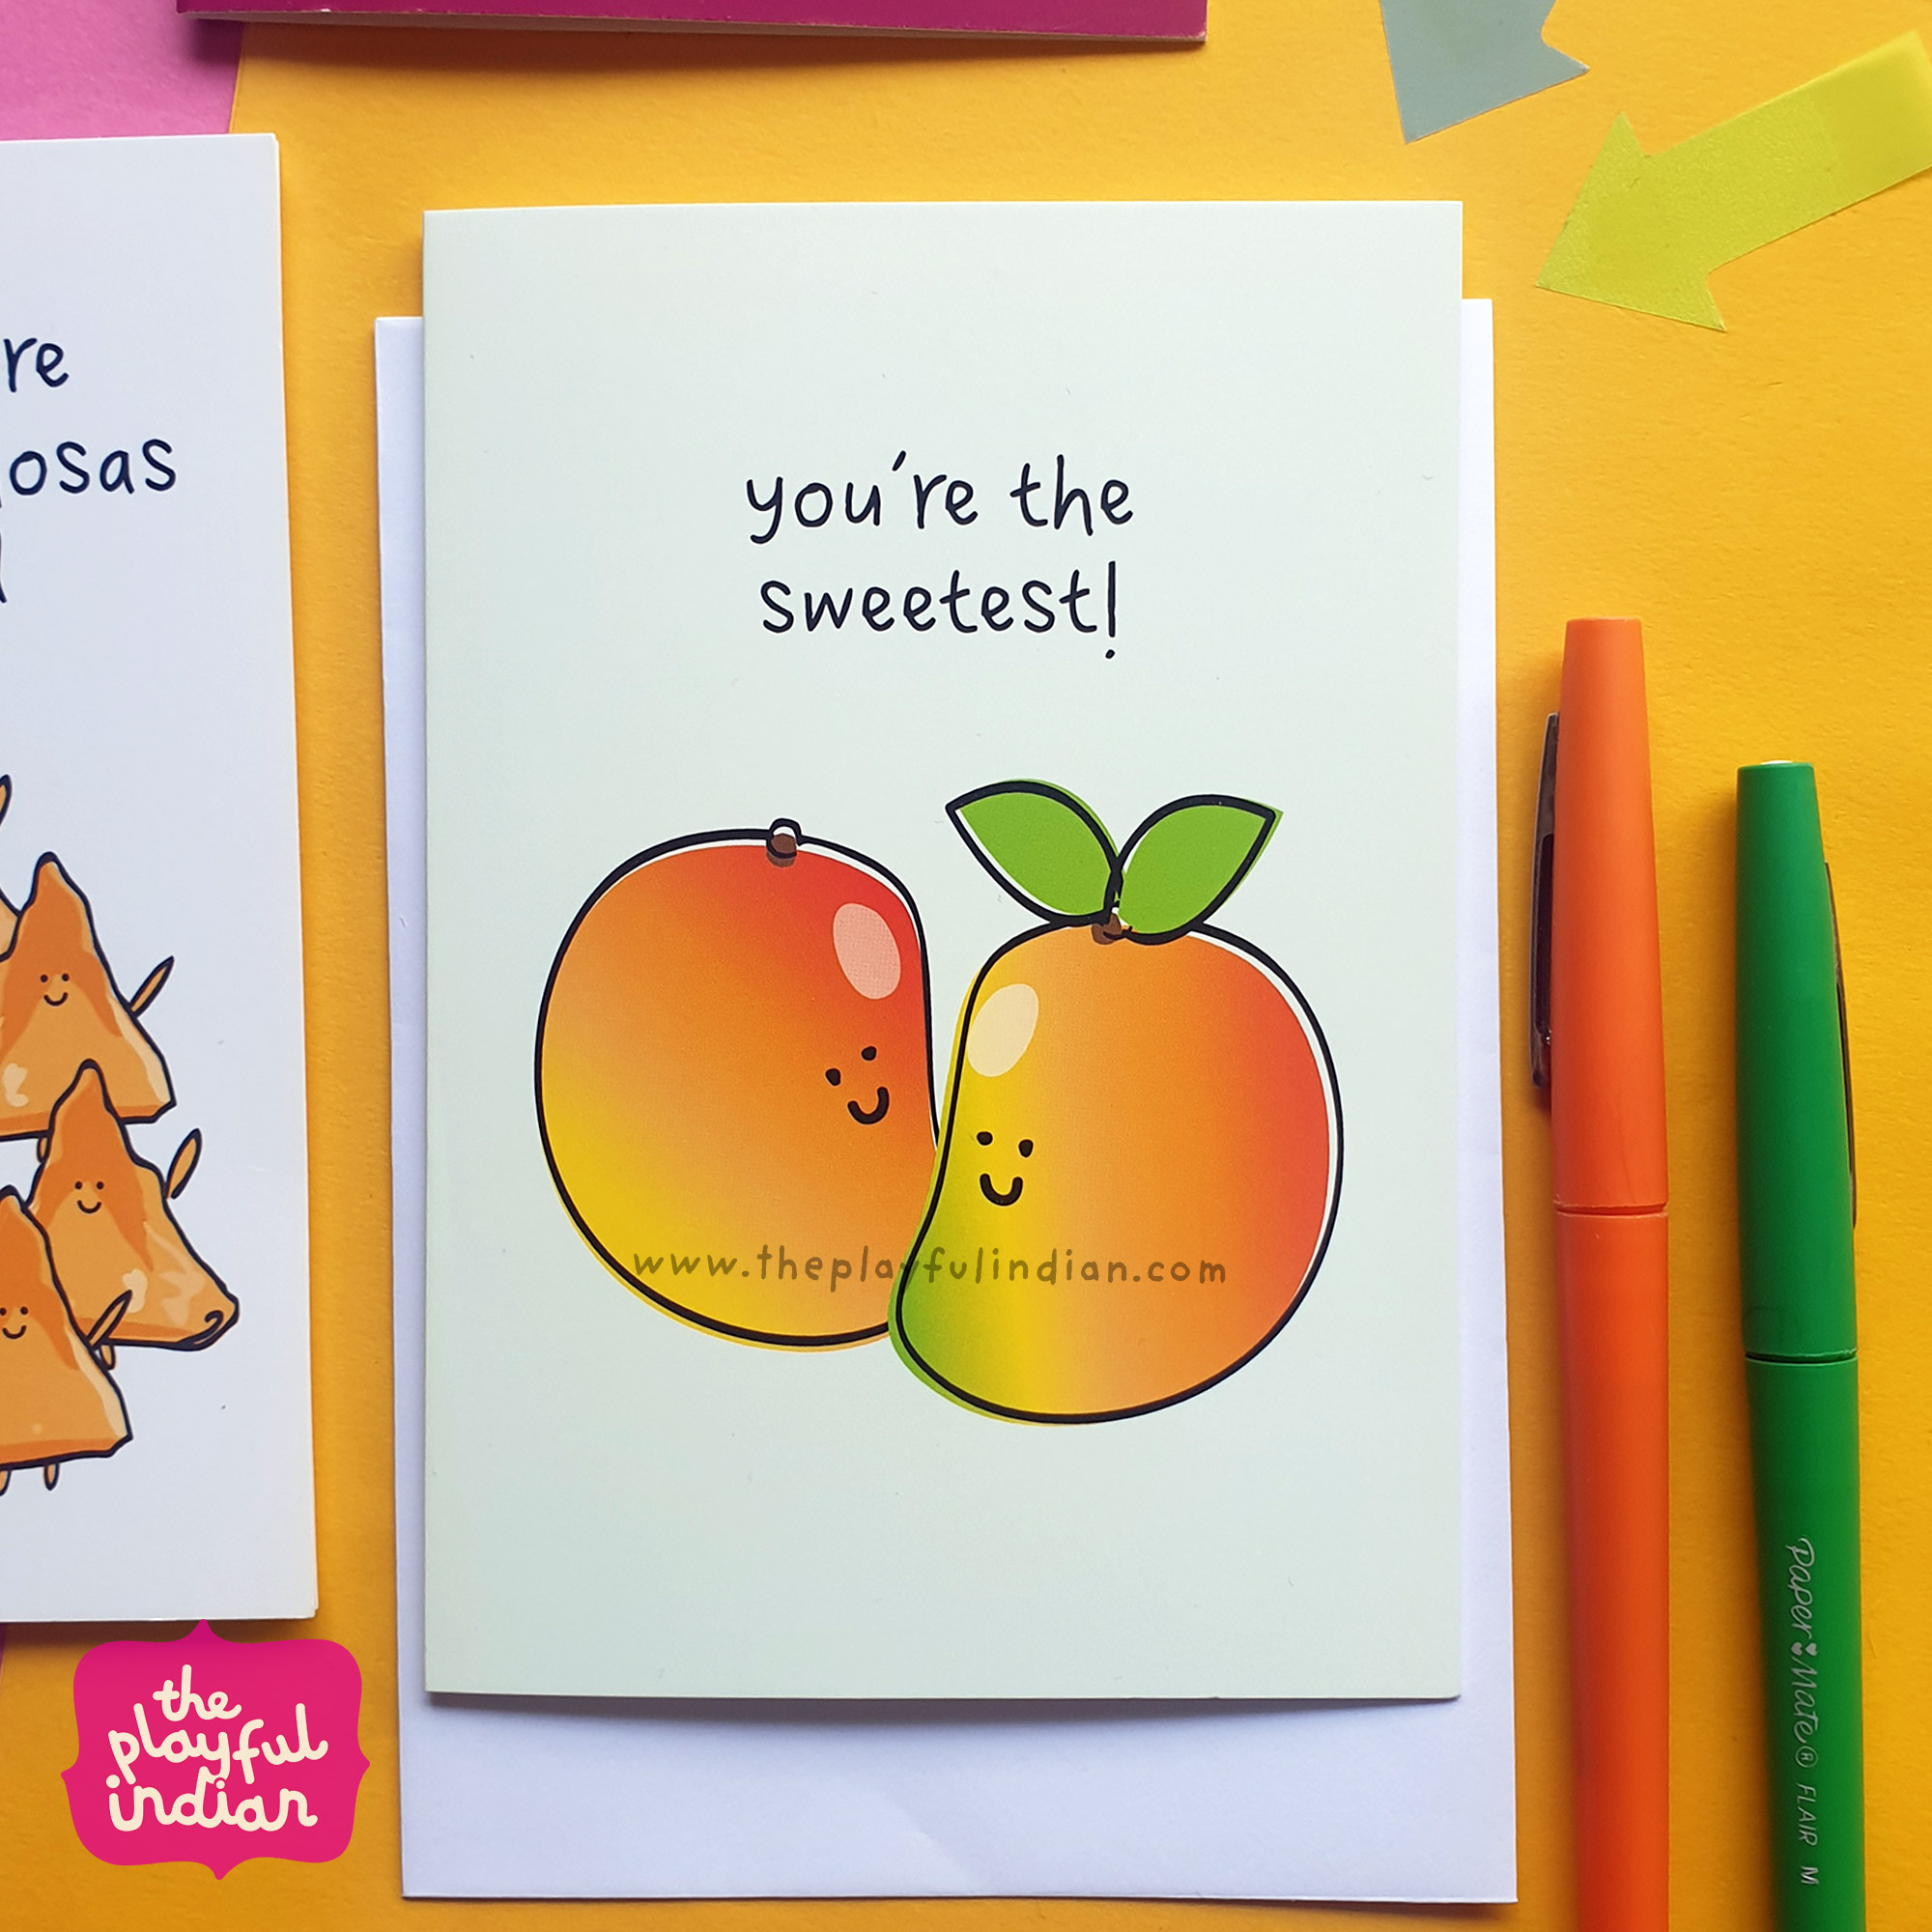 sweetest greeting card